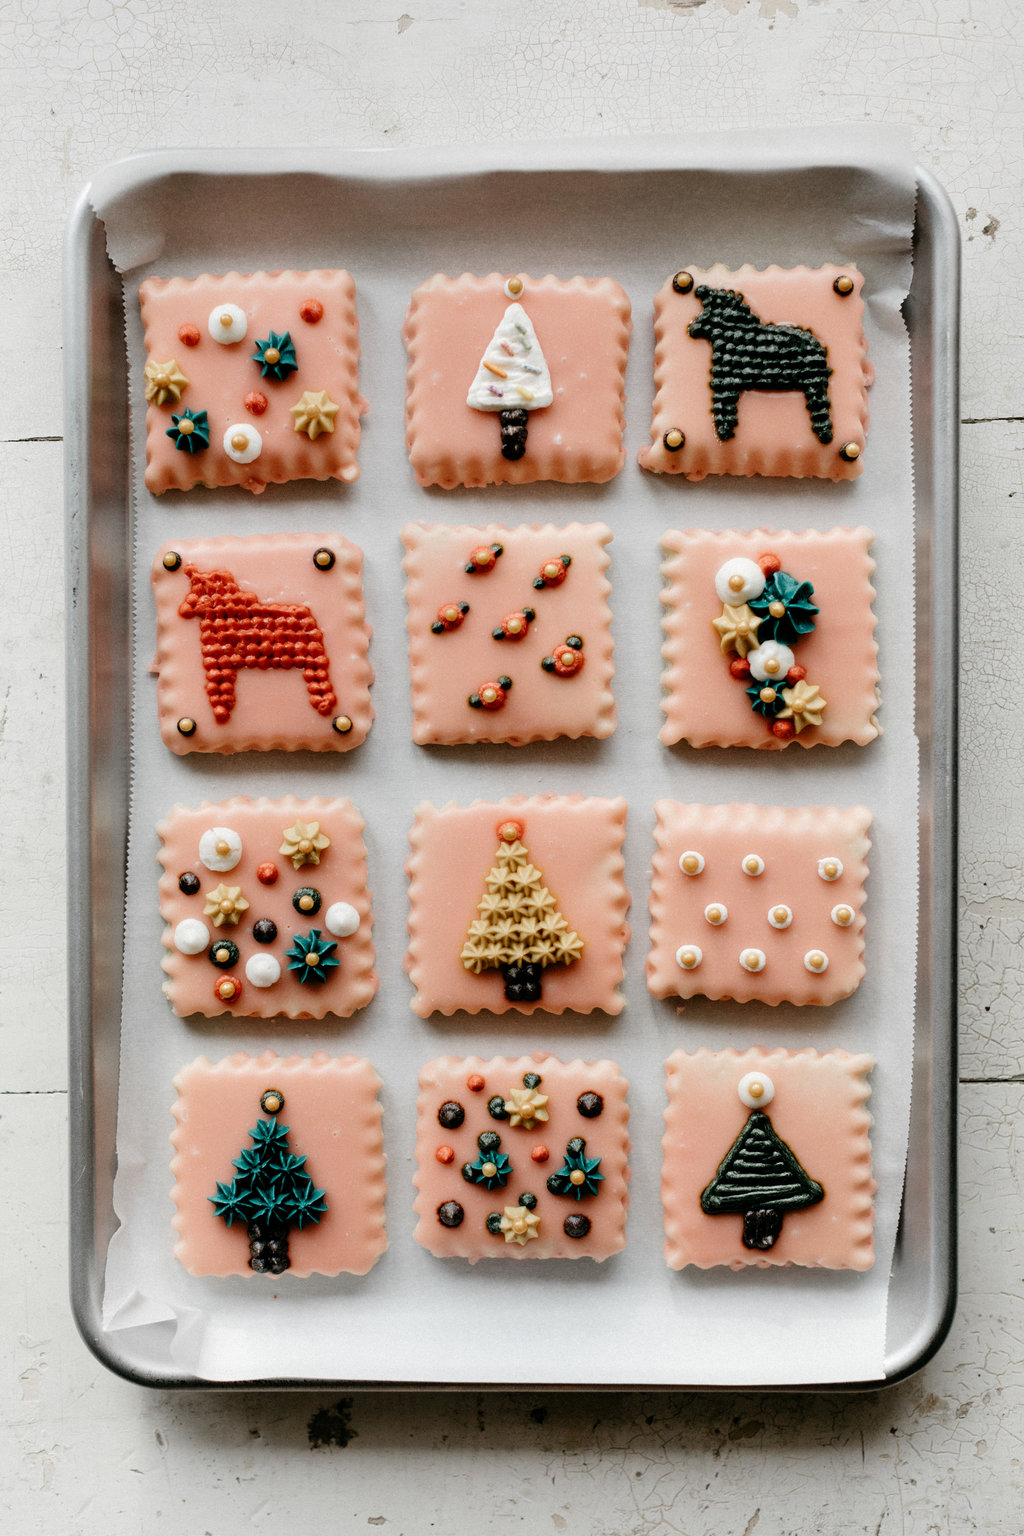 molly-yeh-pampered-chef-cookies-86.jpg